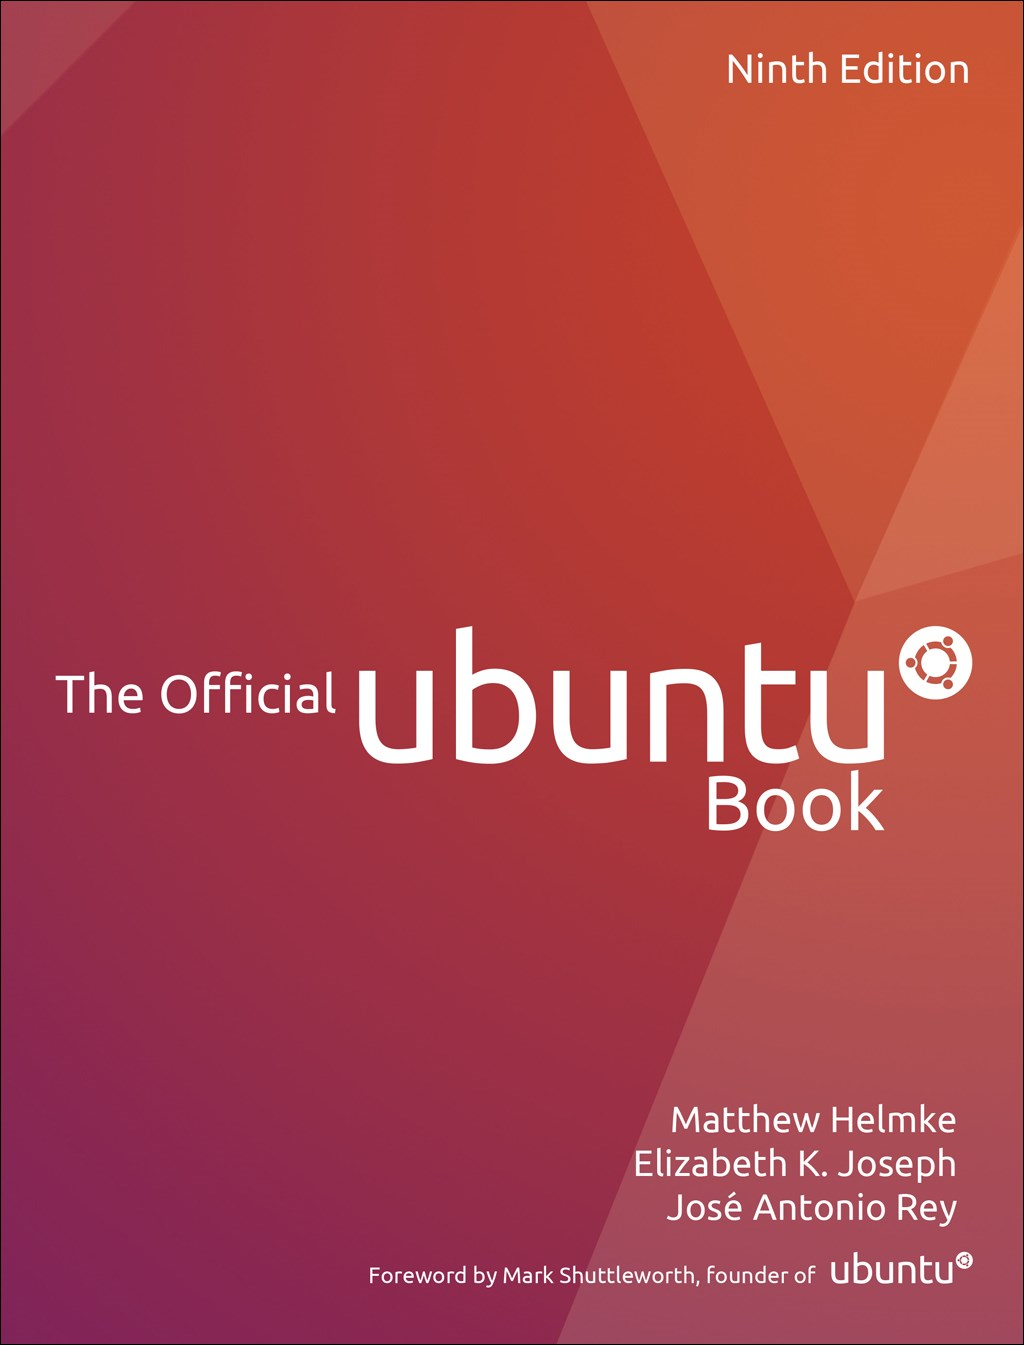 Official Ubuntu Book, The, 9th Edition